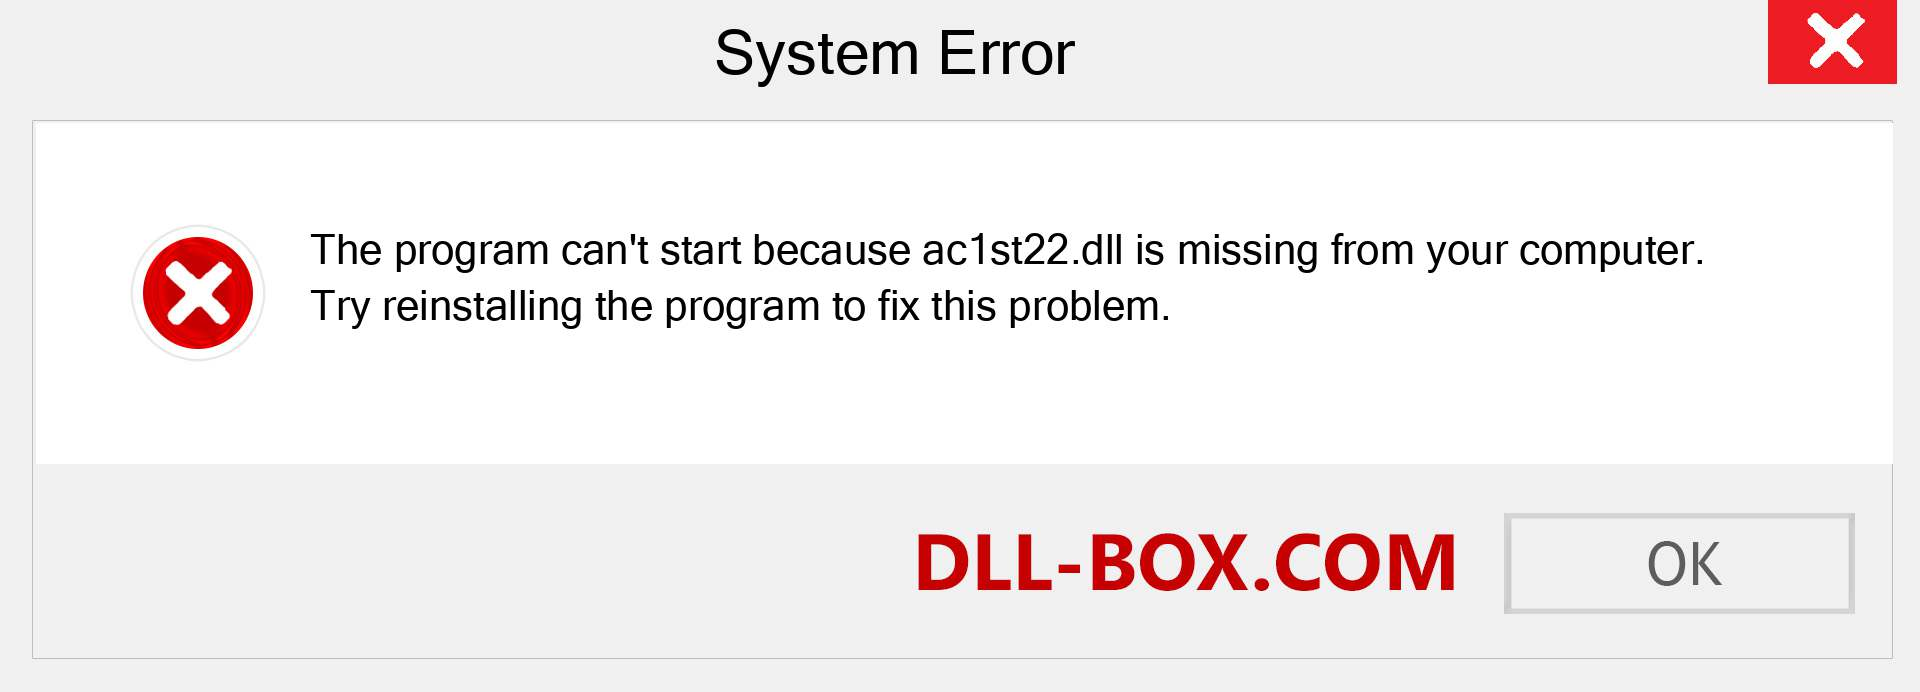 ac1st22.dll file is missing?. Download for Windows 7, 8, 10 - Fix  ac1st22 dll Missing Error on Windows, photos, images